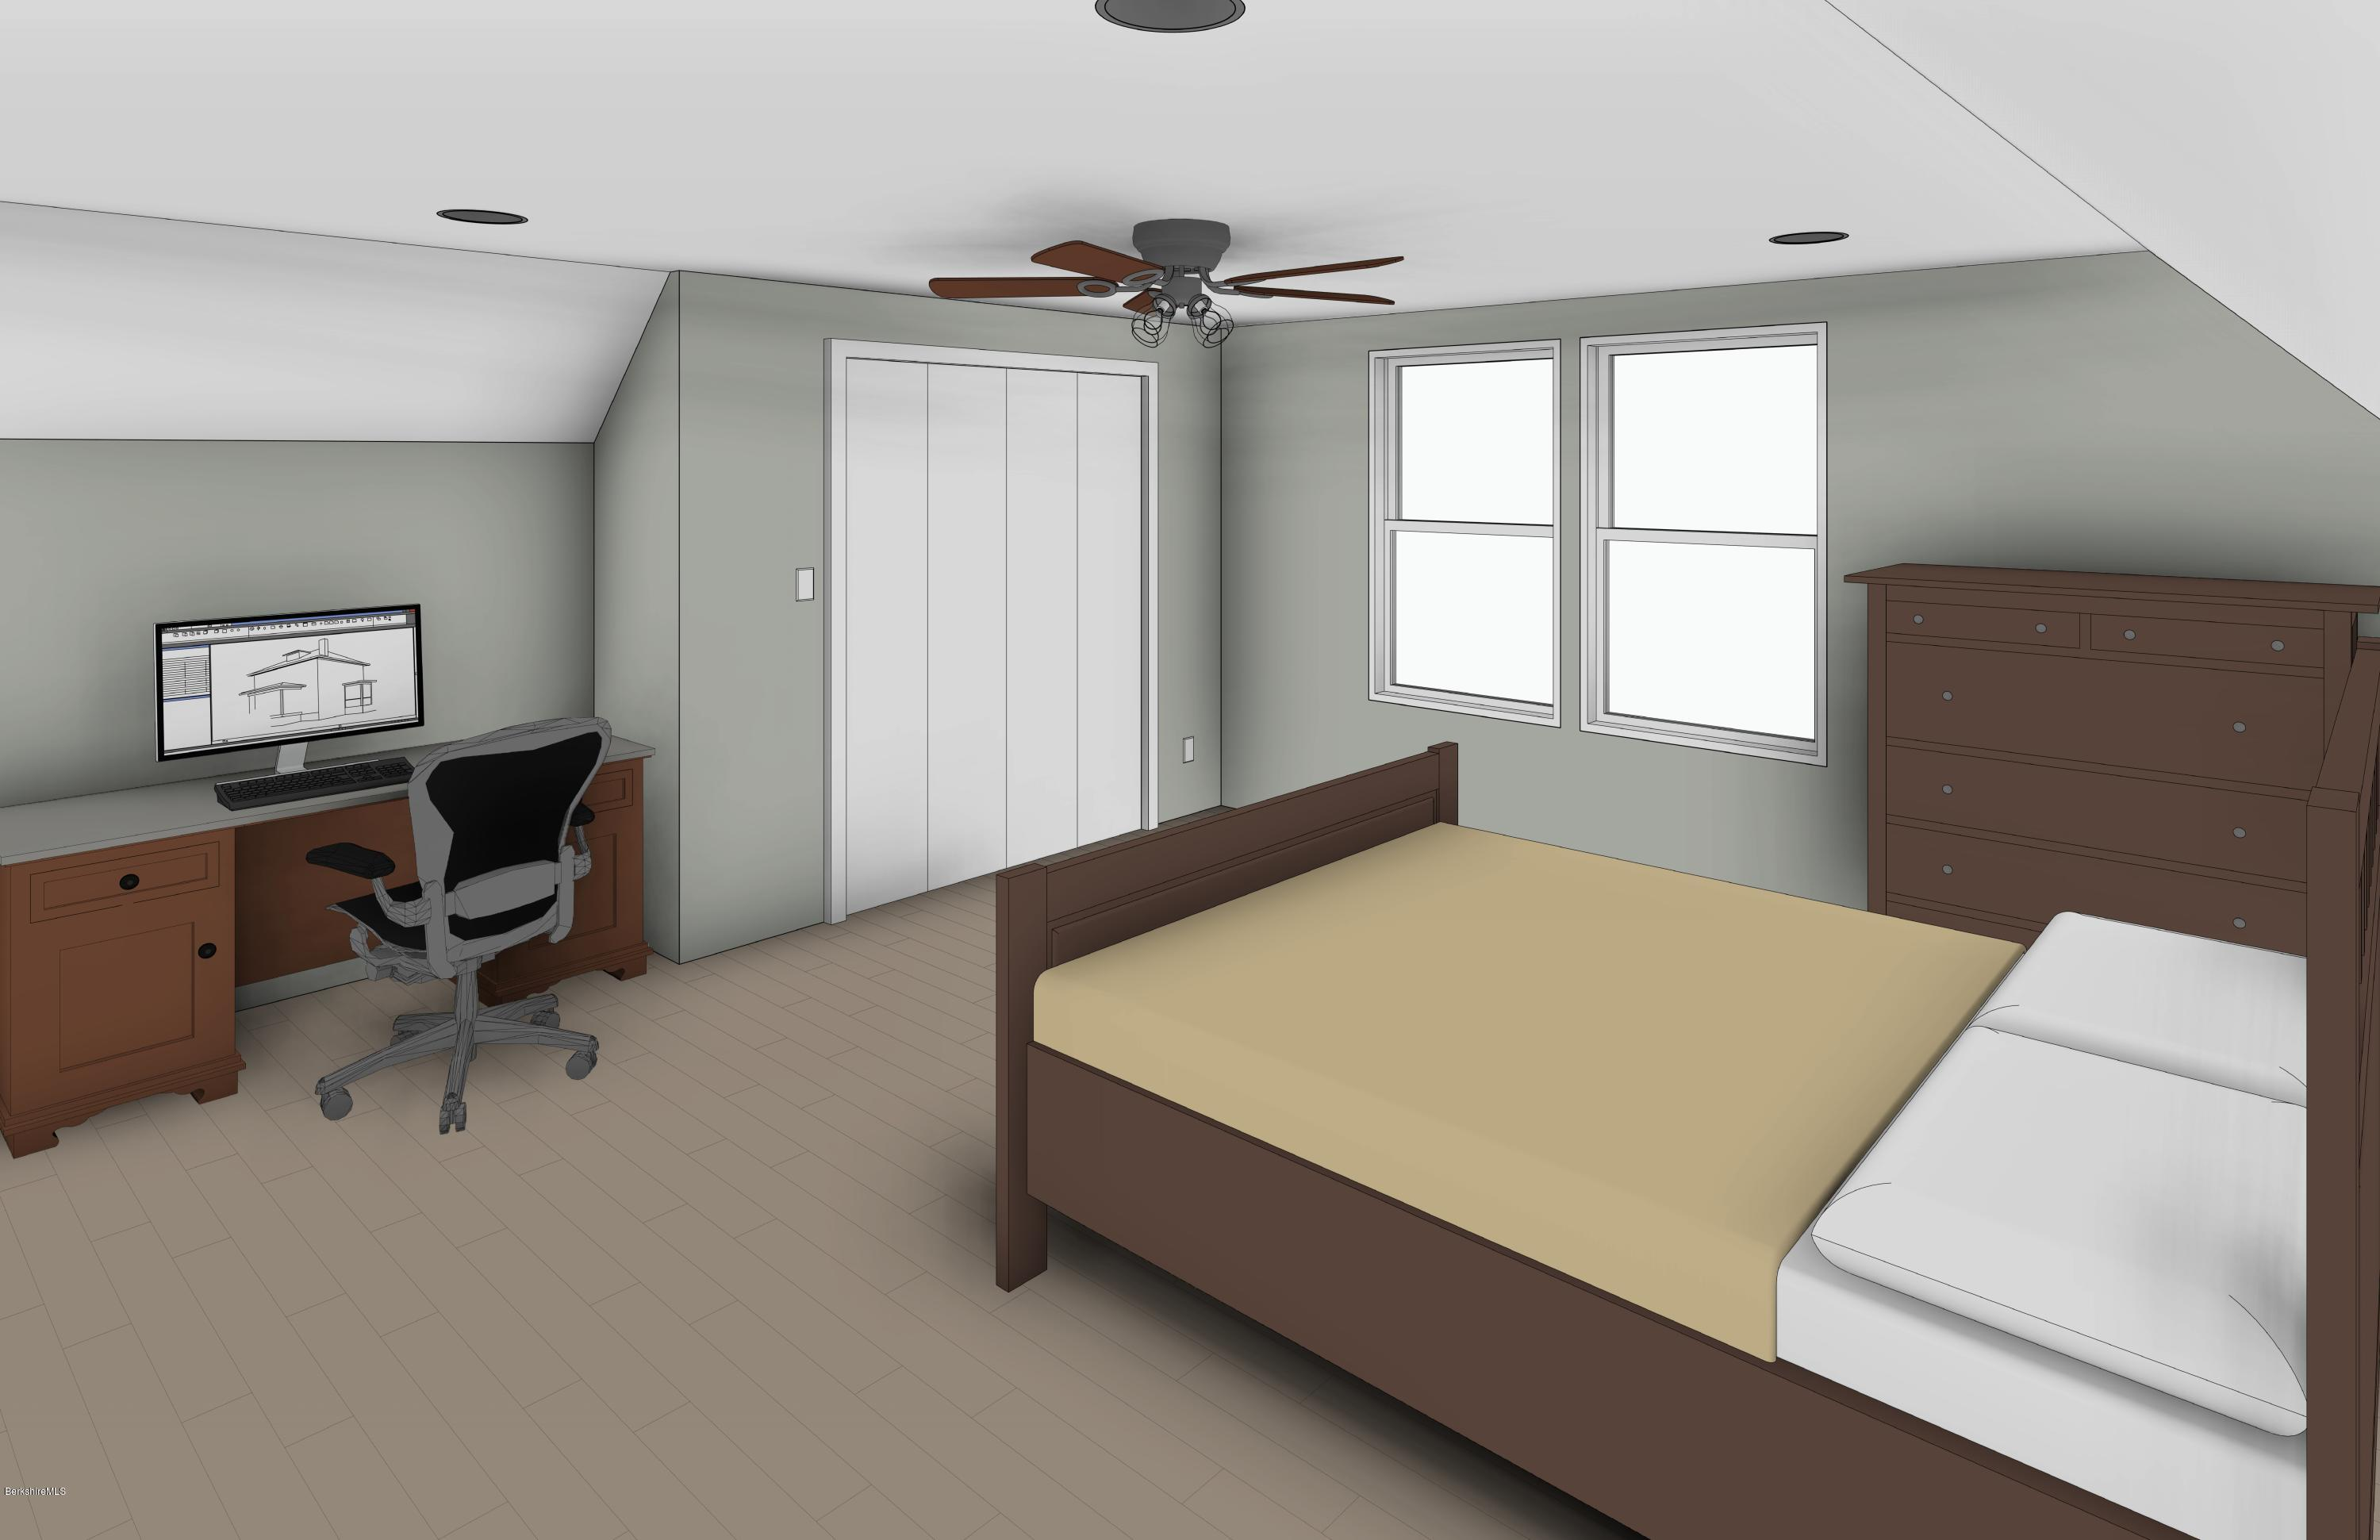 Third Floor Master Bedroom